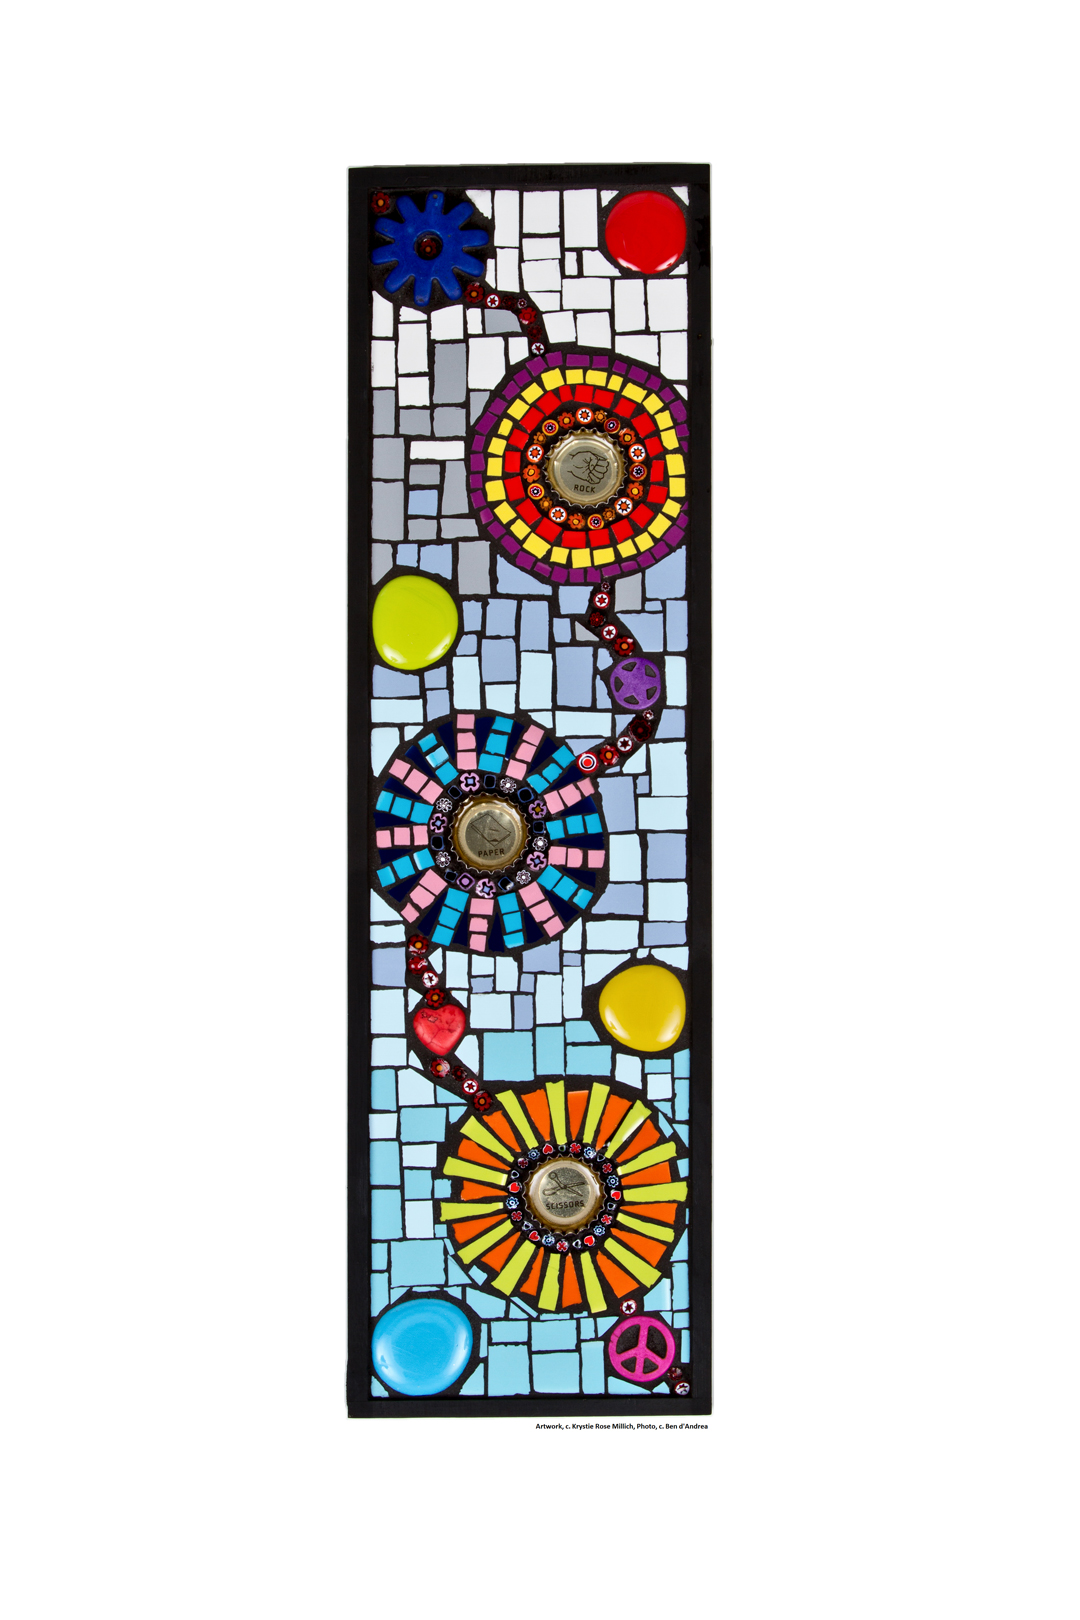 krystie rose millich tile mosaic artist in denver colorado rock paper scissors